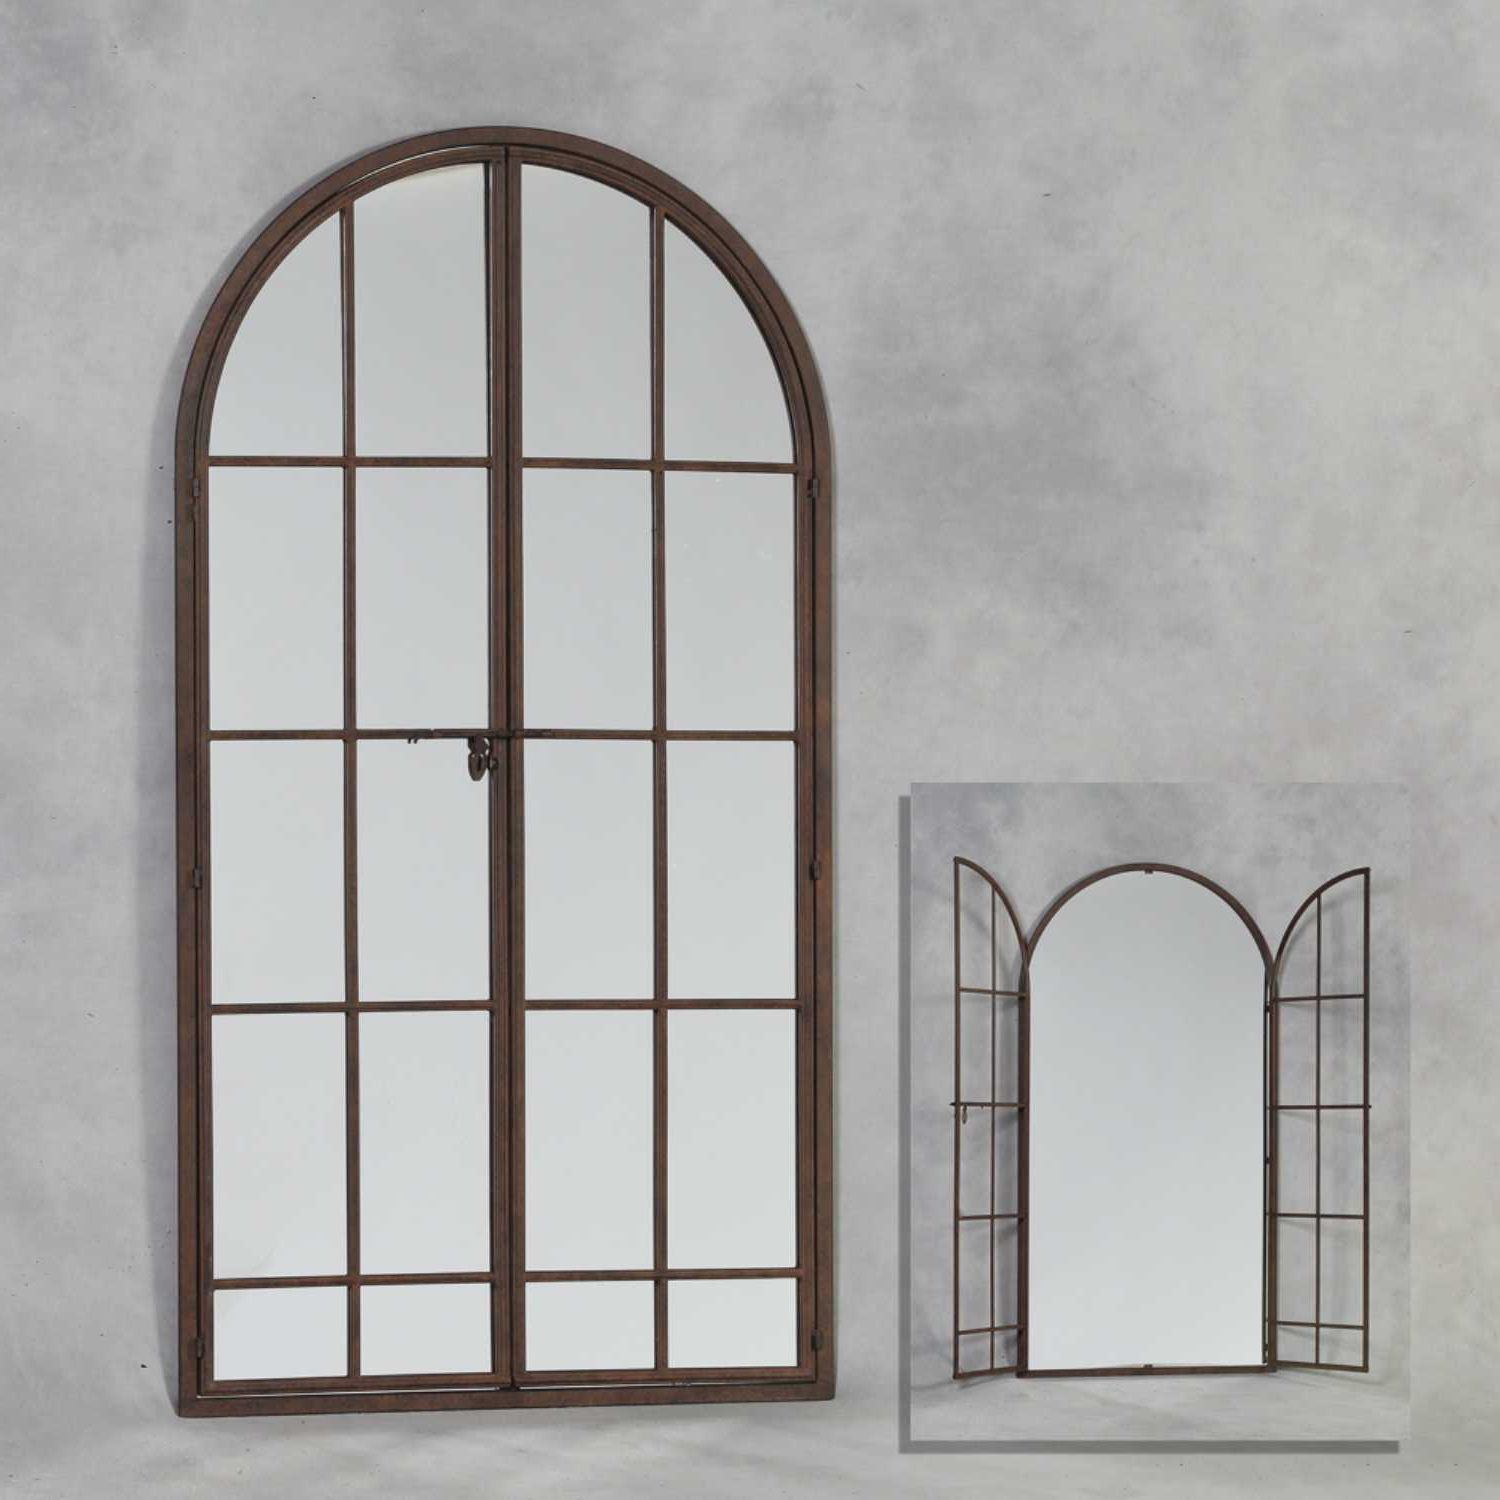 Fashionable Metal Arch Window Wall Mirrors With Regard To Large Arched Metal Opening Window Wall Mirror Antiqued Iron Frame (View 4 of 20)